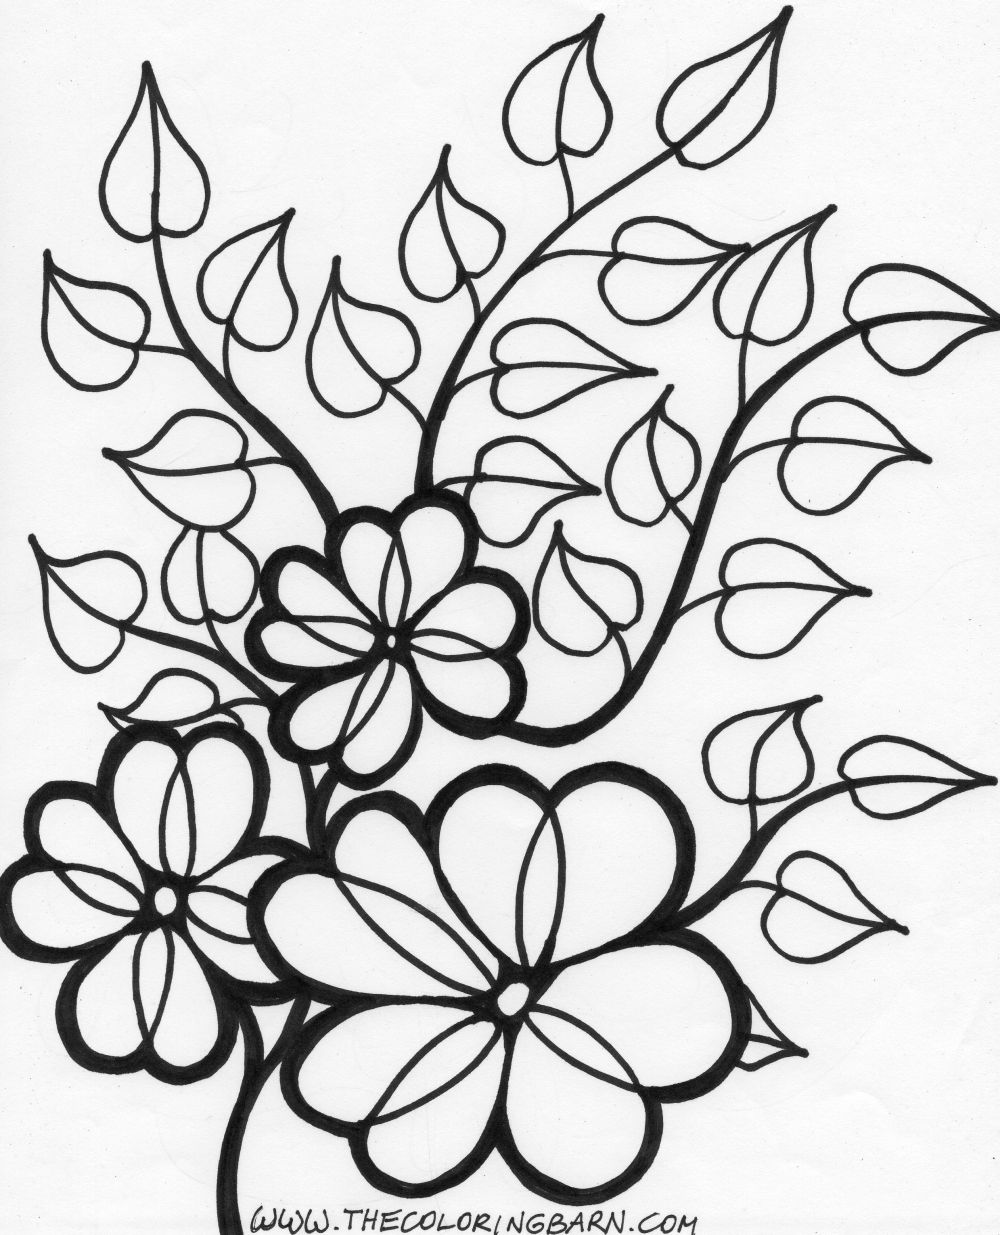 1000x1235 Flower Vines Coloring Page Wild Printablefree Coloring Pages